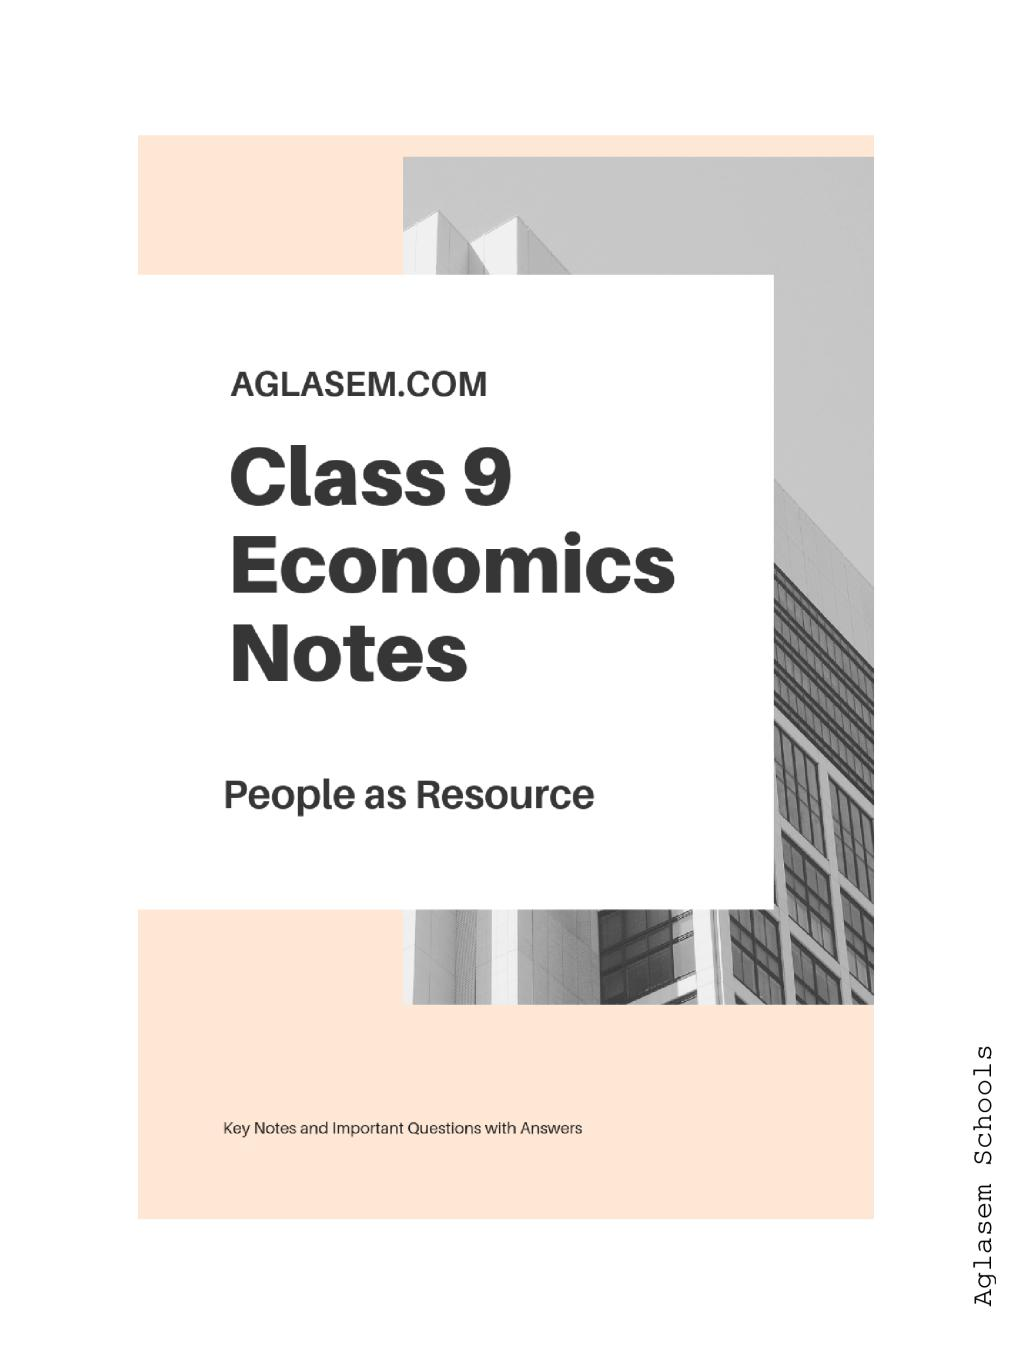 Class 9 Social Science (Economics) People as Resource Notes, Important Questions & Practice Paper